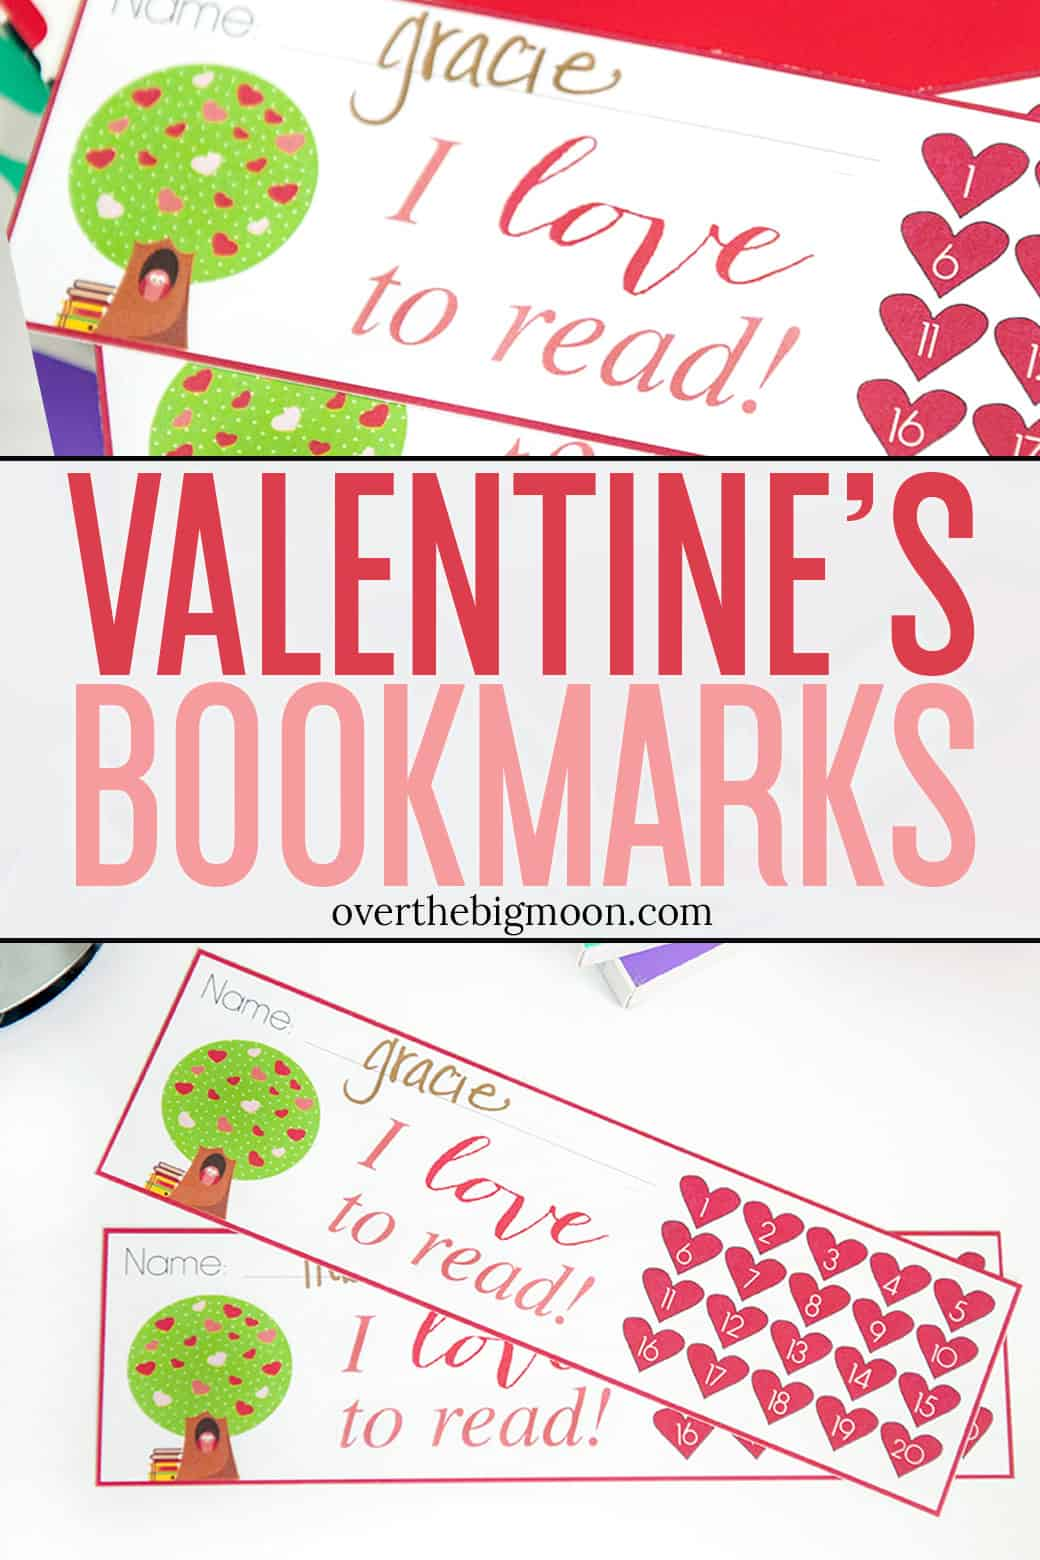 These Valentine's Day Bookmark Punchcard are the perfect way to help your kids track their reading and help motivate them to learn to love to read! The basic heart designed can really be used all year though! From overthebigmoon.com!